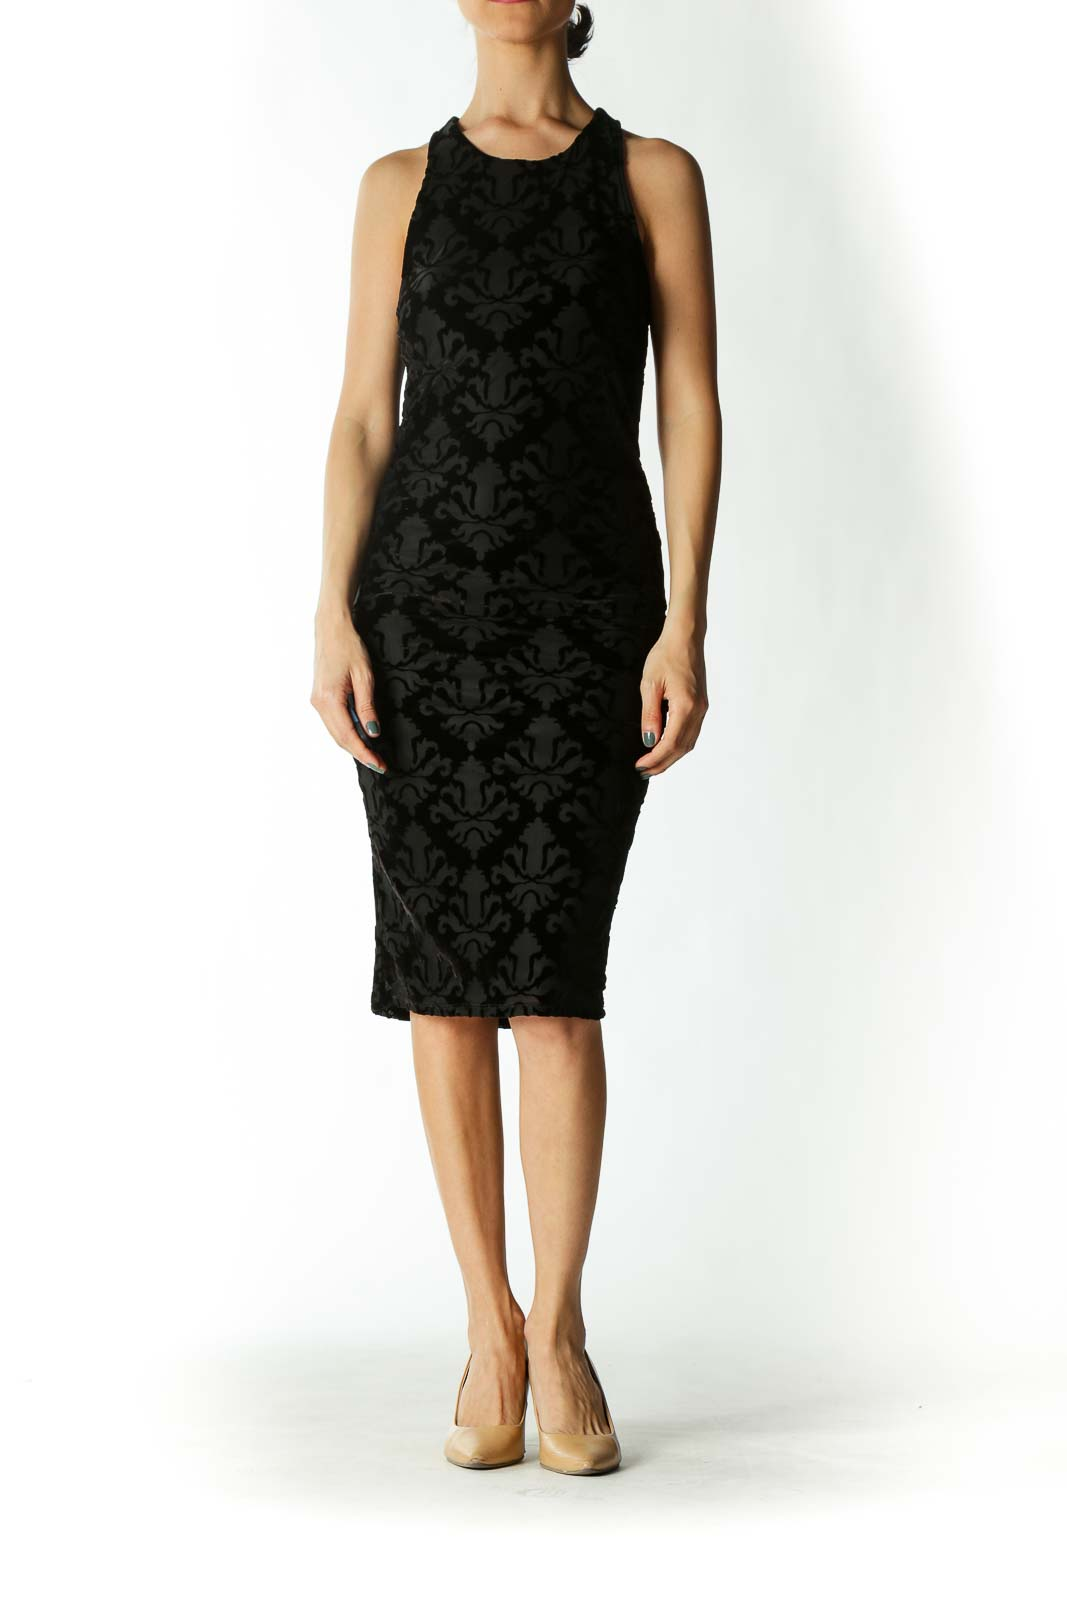 Black Velvet-Patterned Racer-Back Fitted Midi Dress